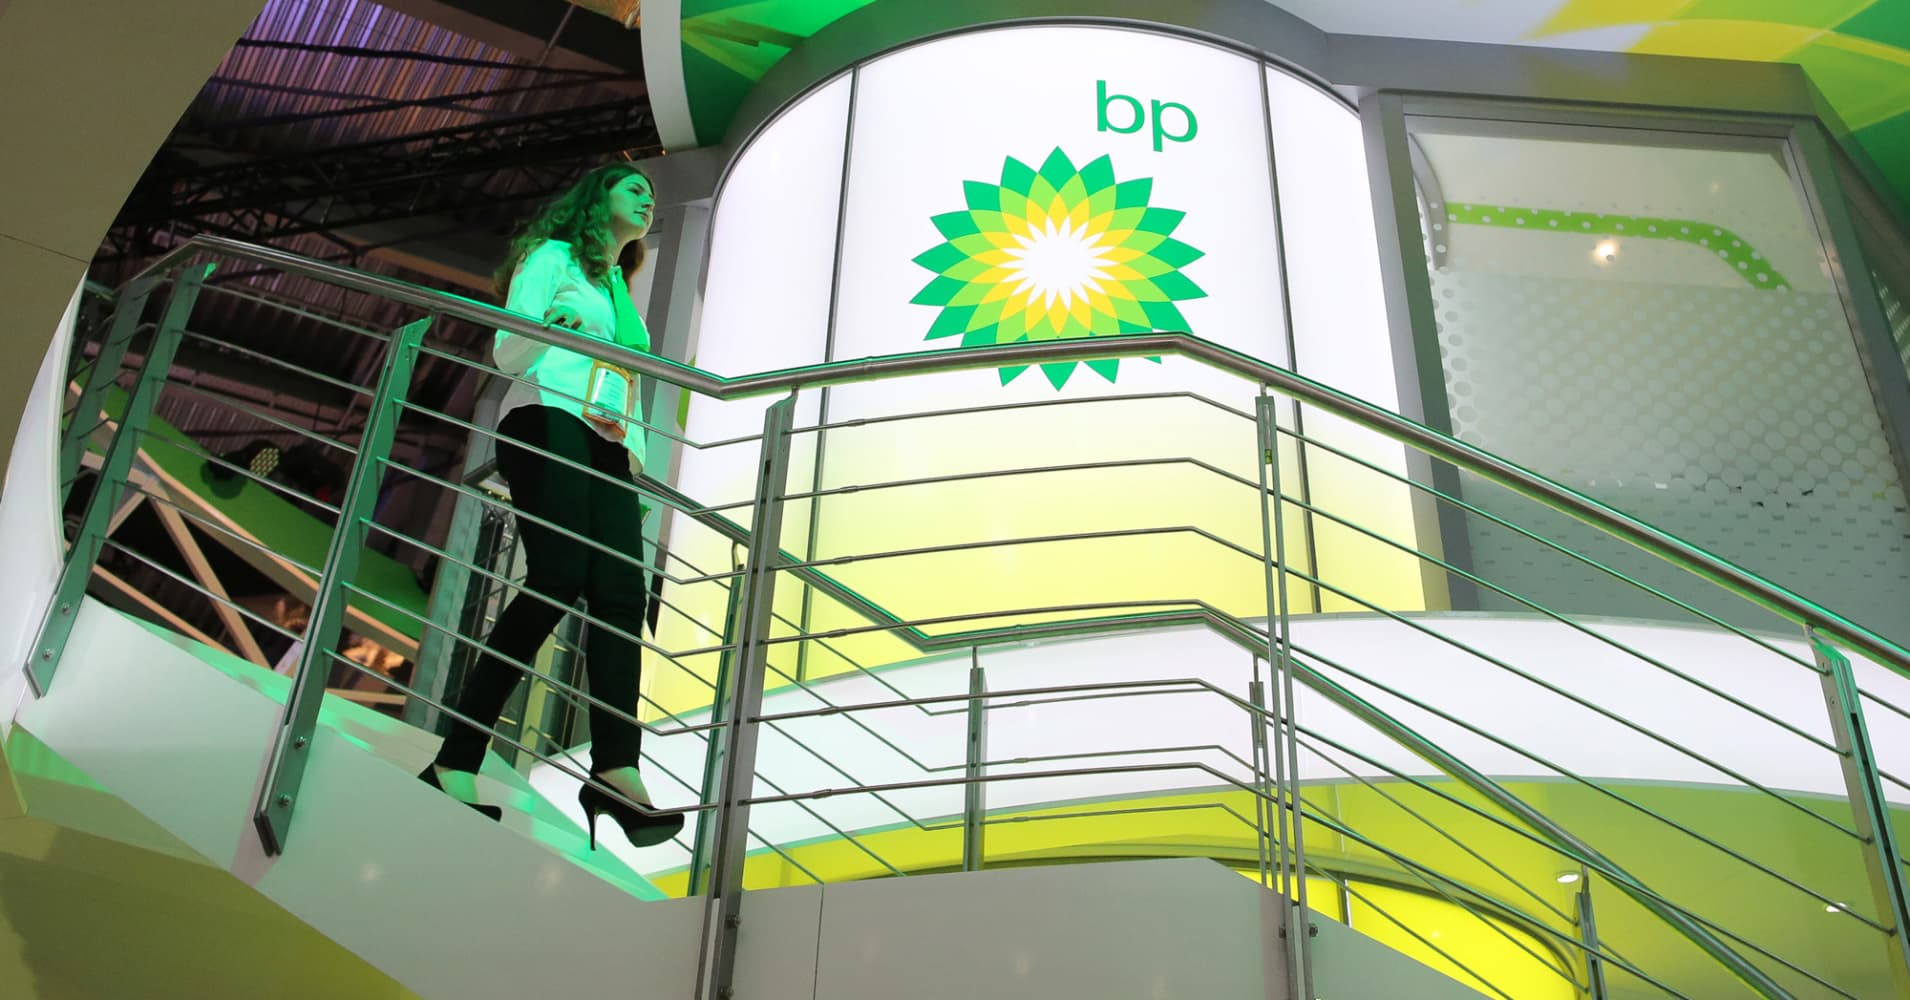 Live blog: Shares of BP jump after company reports Q2 profits on higher oil prices